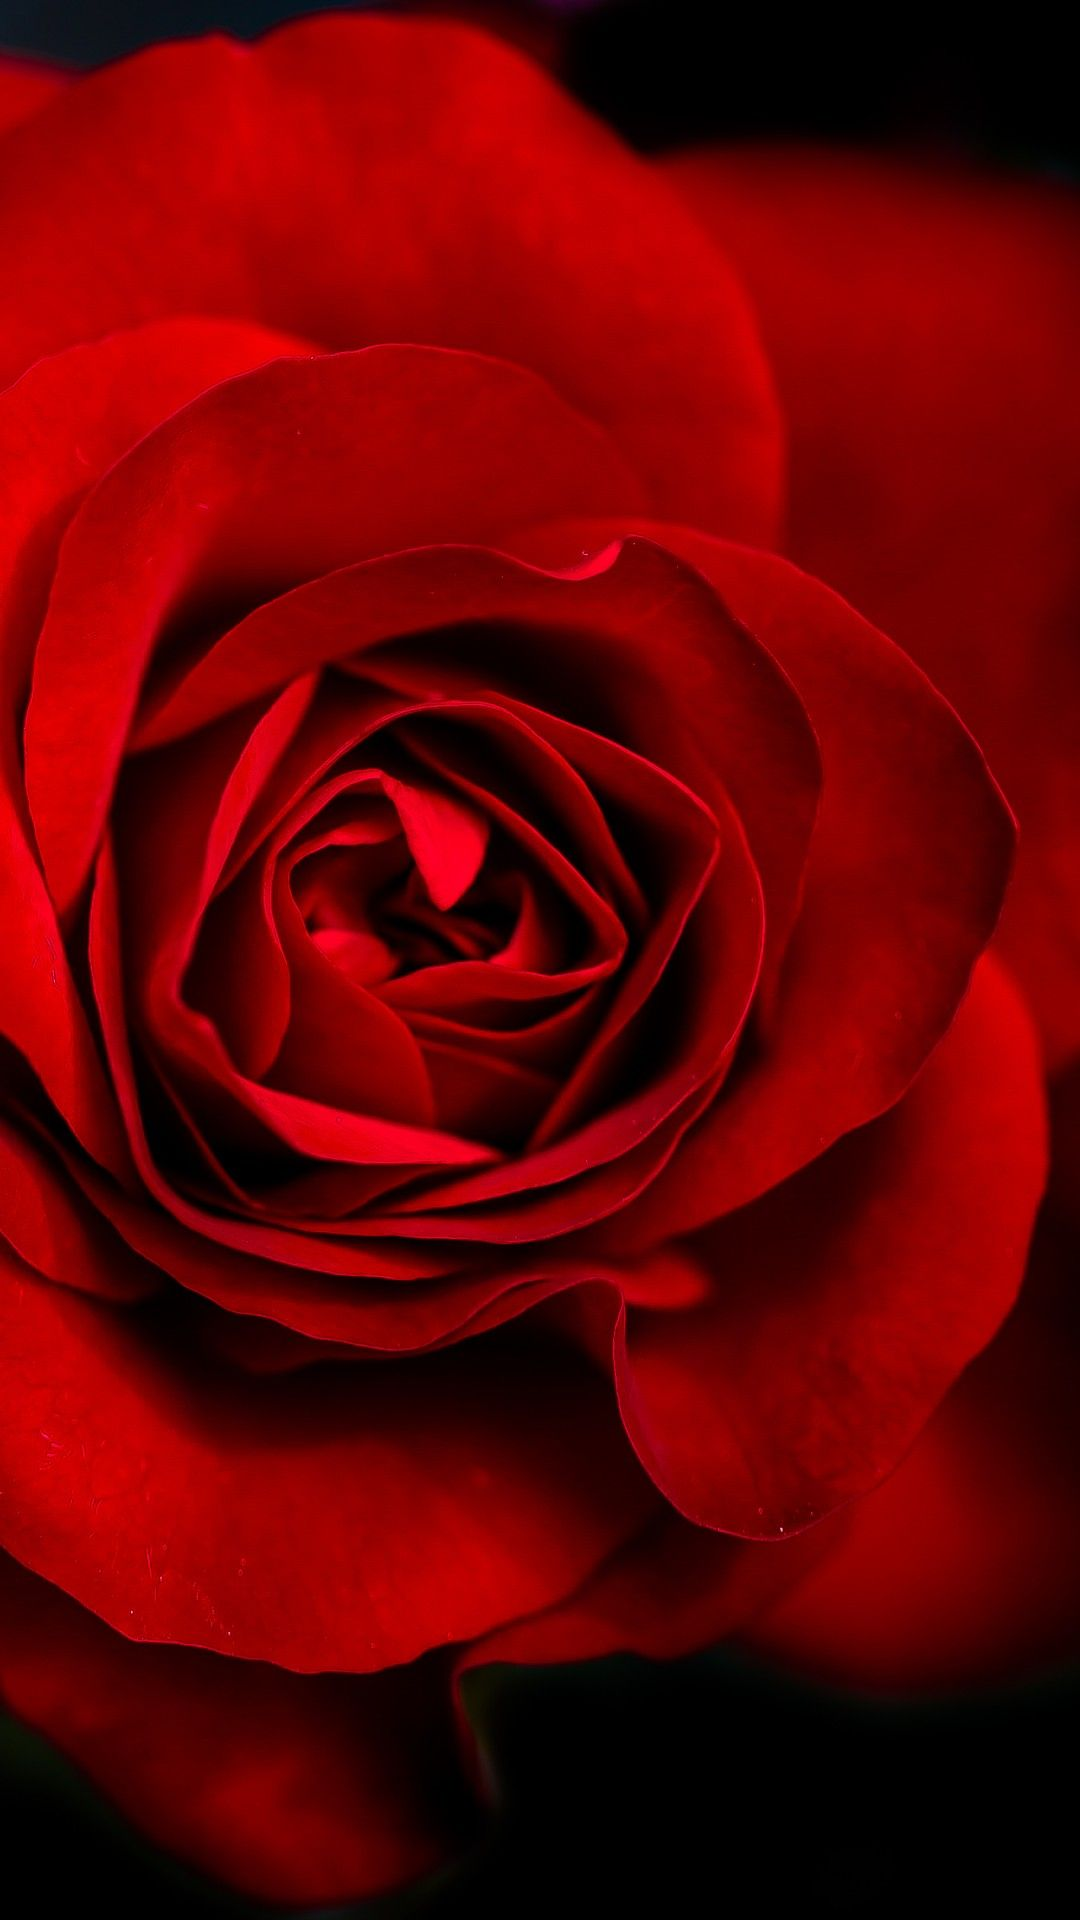 Red Rose Mobile Hd Wallpaper In 2020 Beautiful Rose Flowers Images Red Roses Red Roses Wallpaper